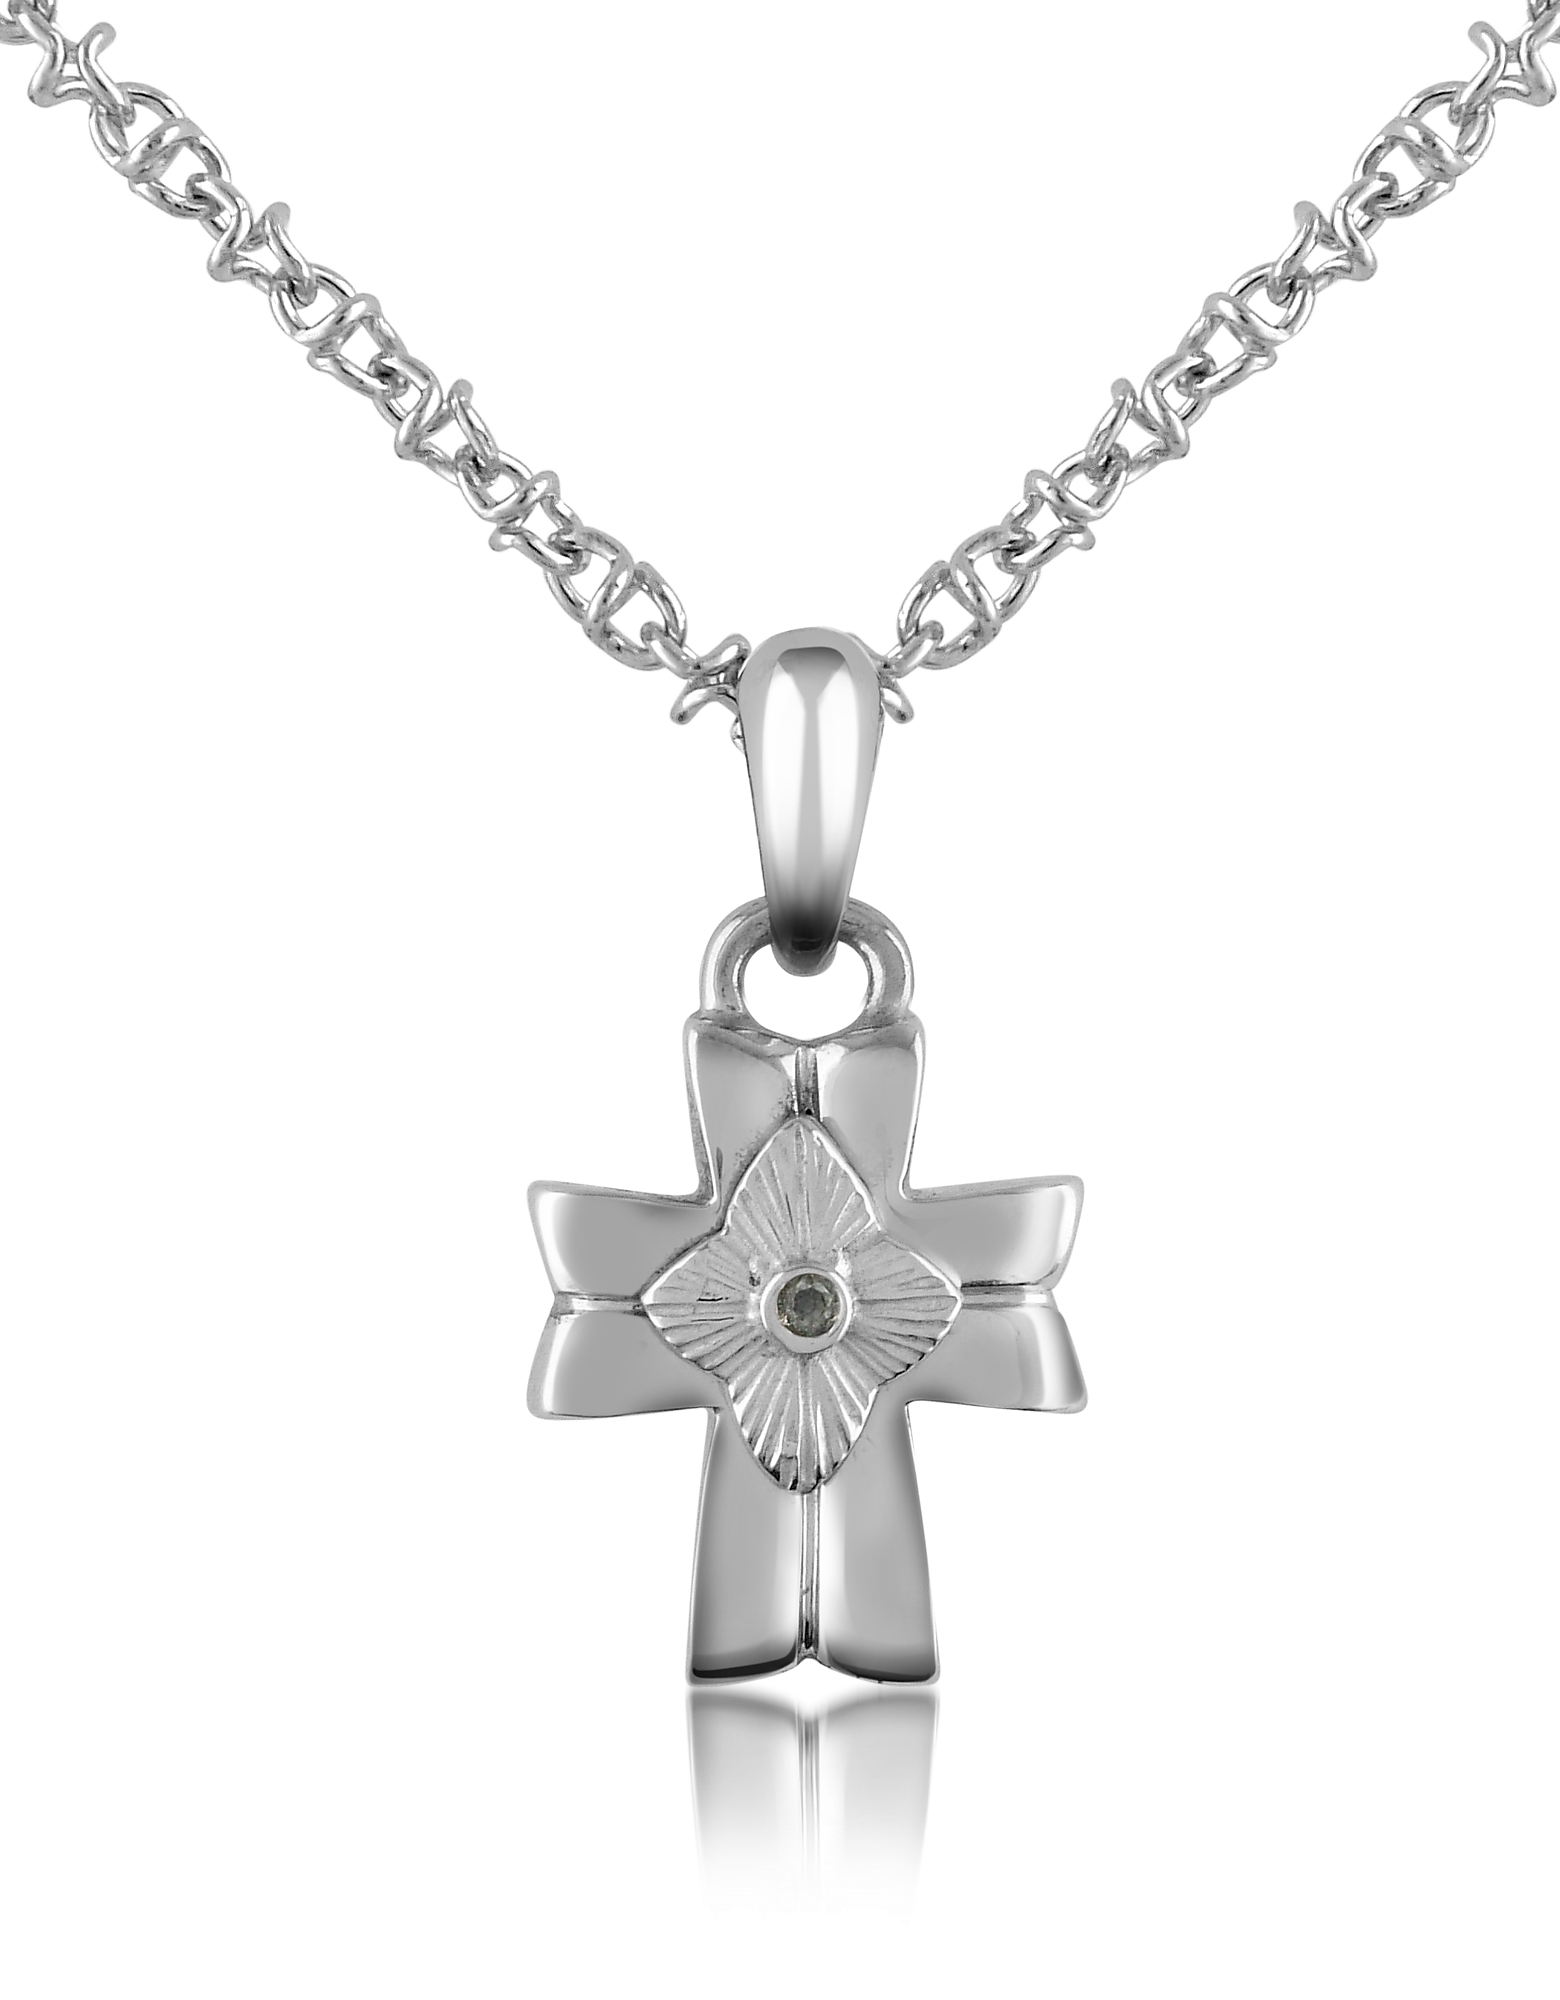 Forzieri Men's Necklaces, Diamond and Stainless Steel Cross Pendant Necklace